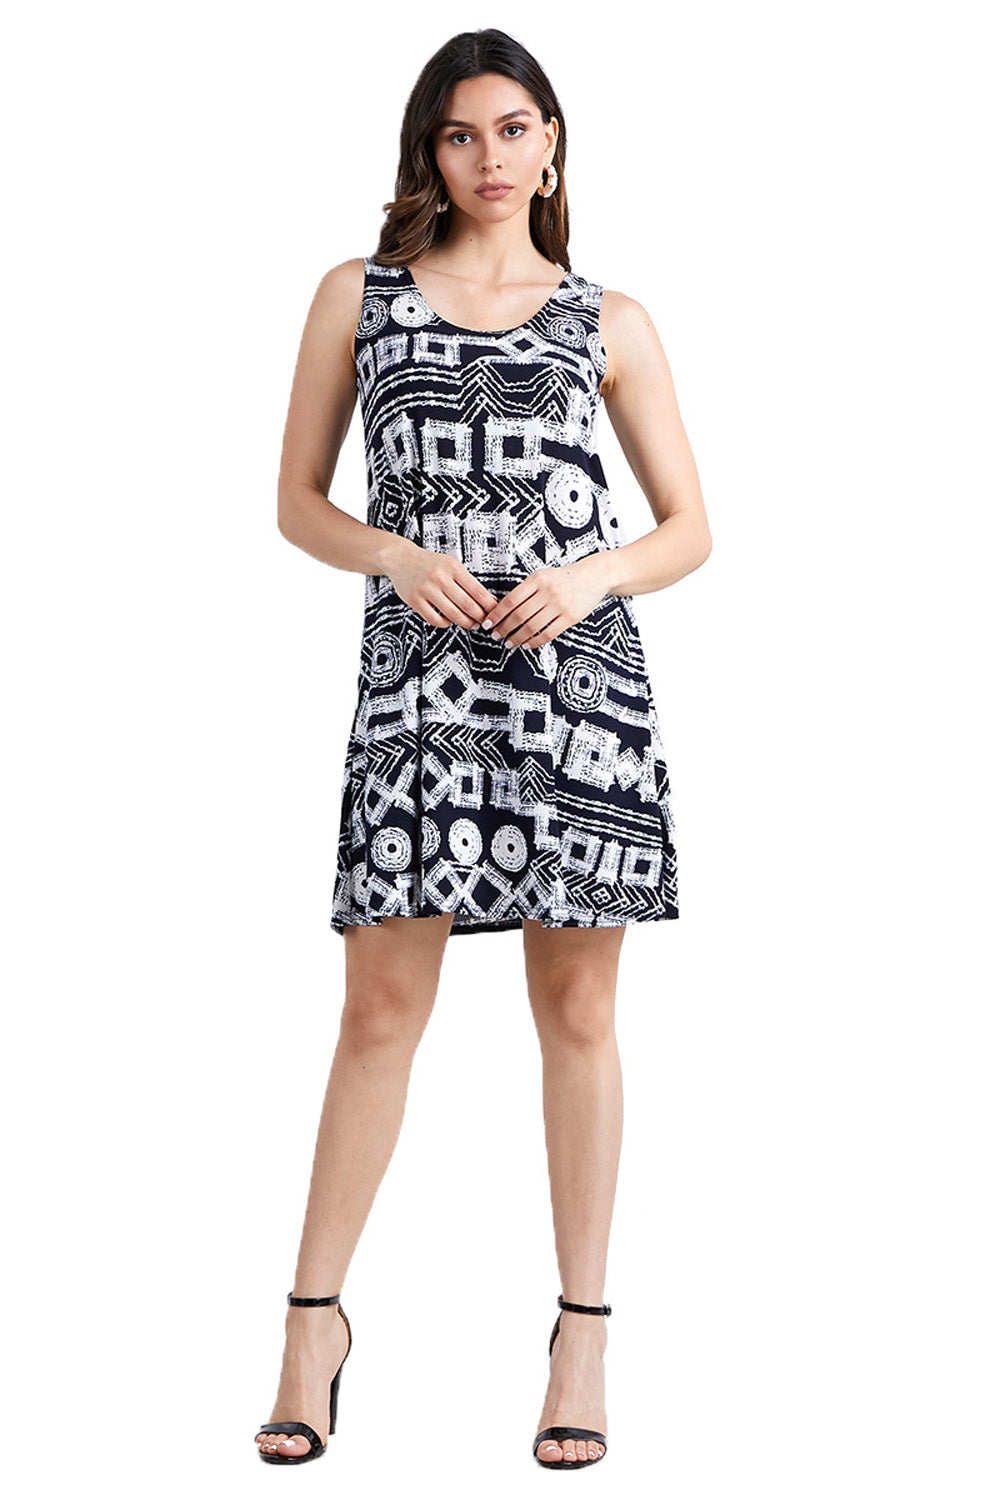 Jostar Women's HIT Missy Tank Dress Sleeveless Prints, 703HT-TP-W197 - Jostar Online